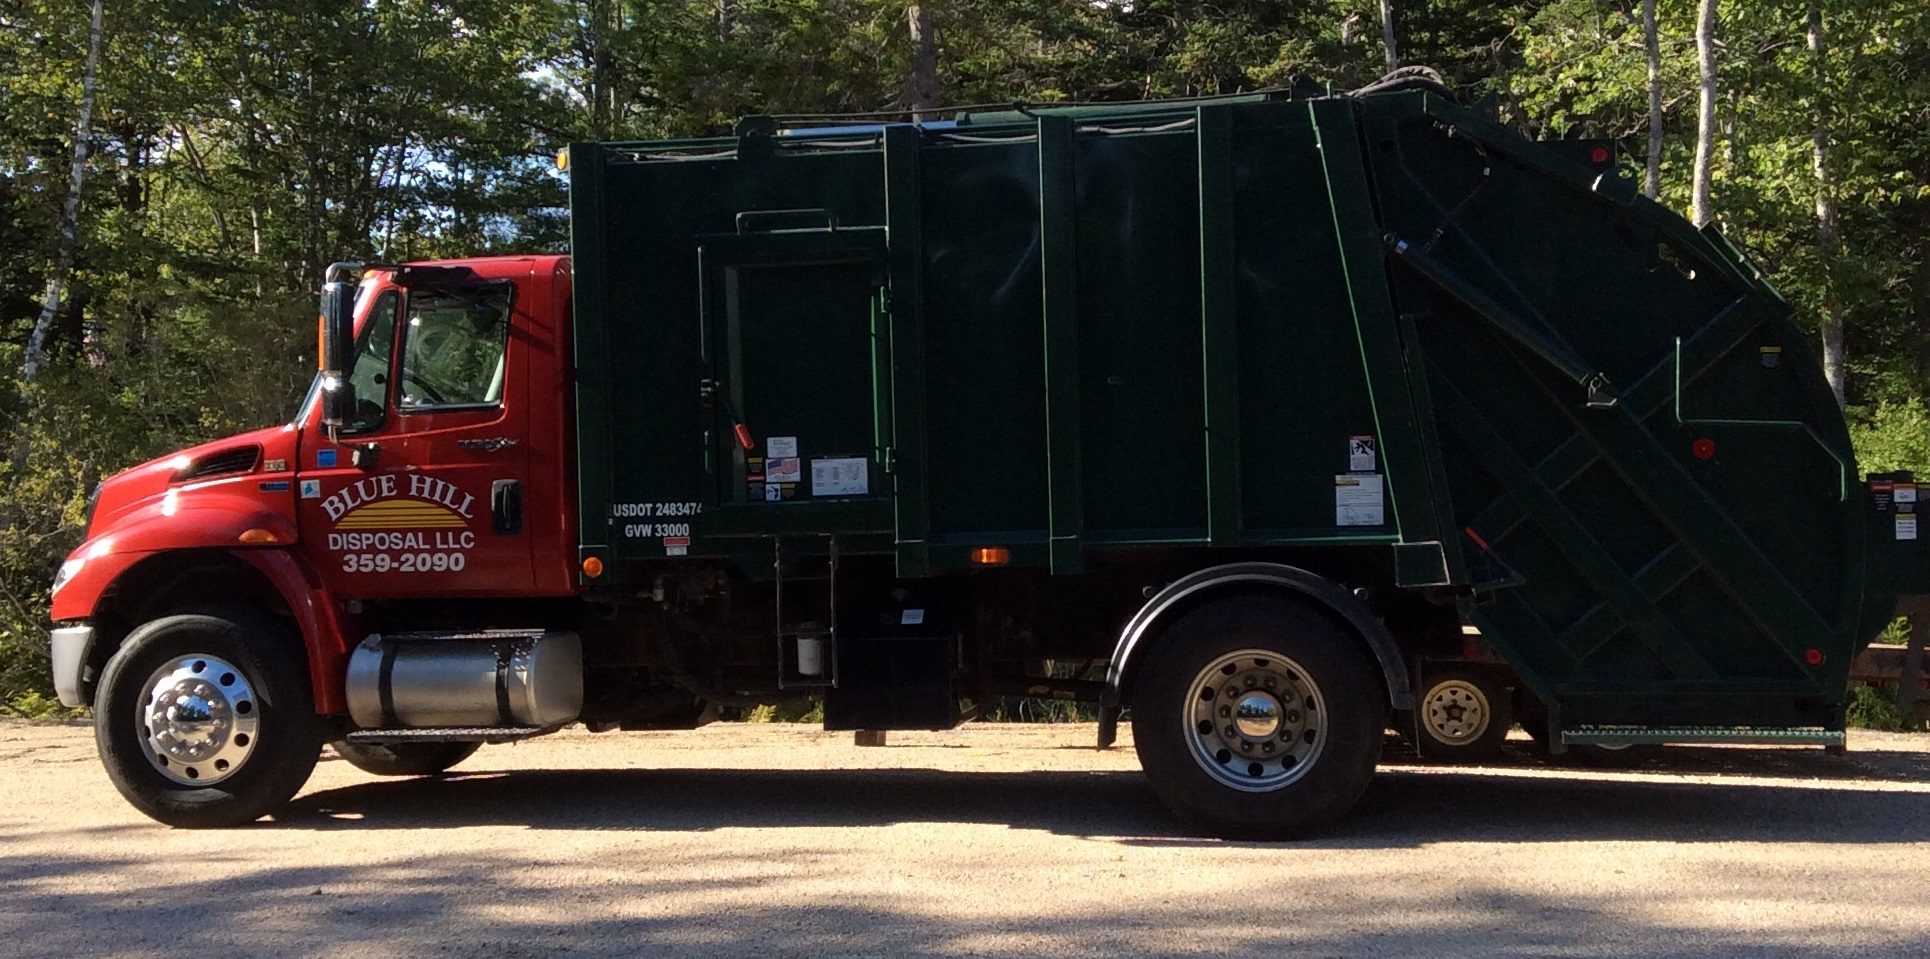 Blue Hill Disposal Garbage removal service